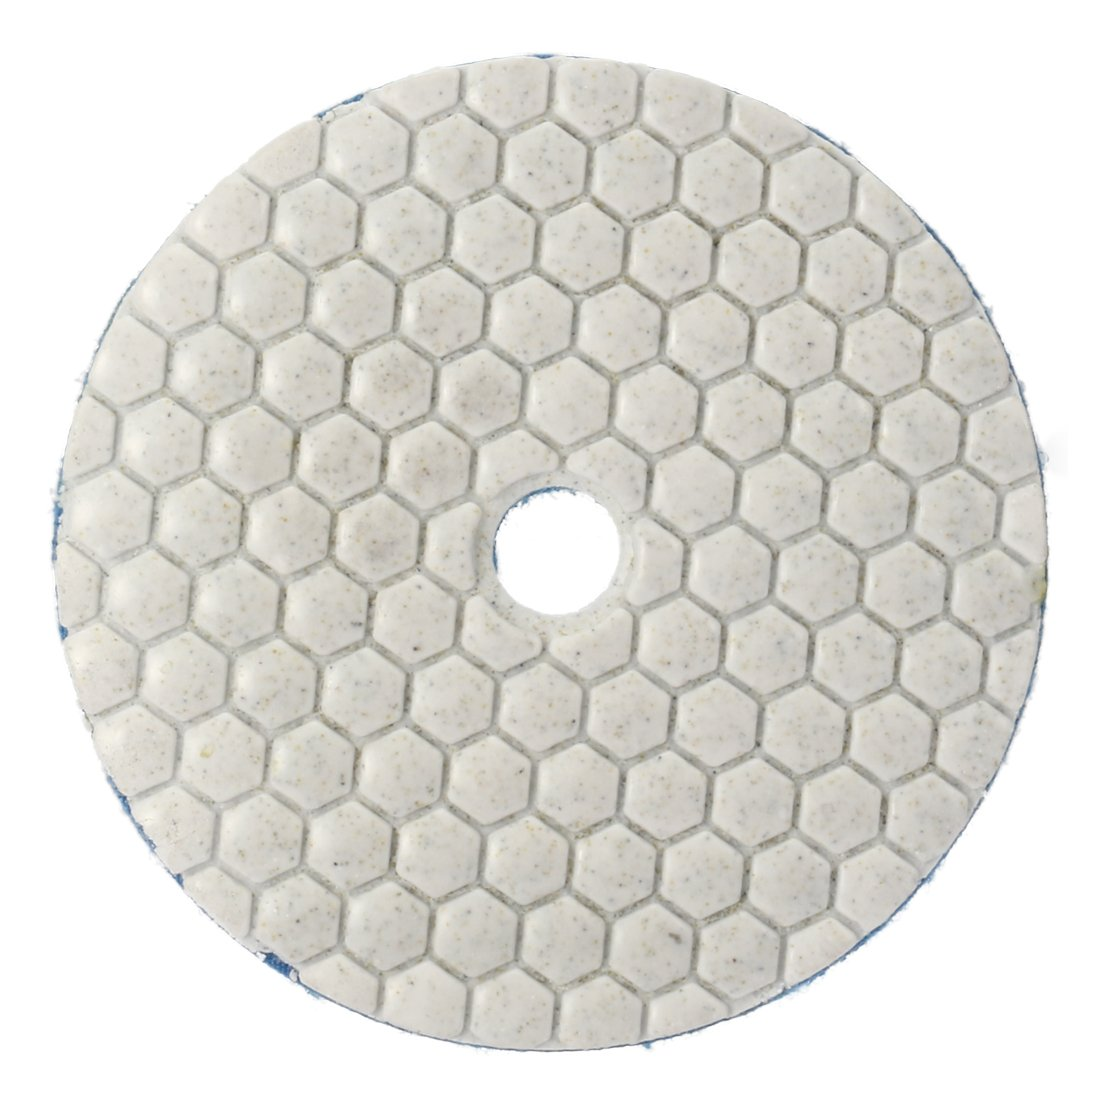 uxcell 4-inch M10 Diamond Dry Polishing Pad Grit 150 7PCS for Sanding Marble Granite Stone by uxcell (Image #4)